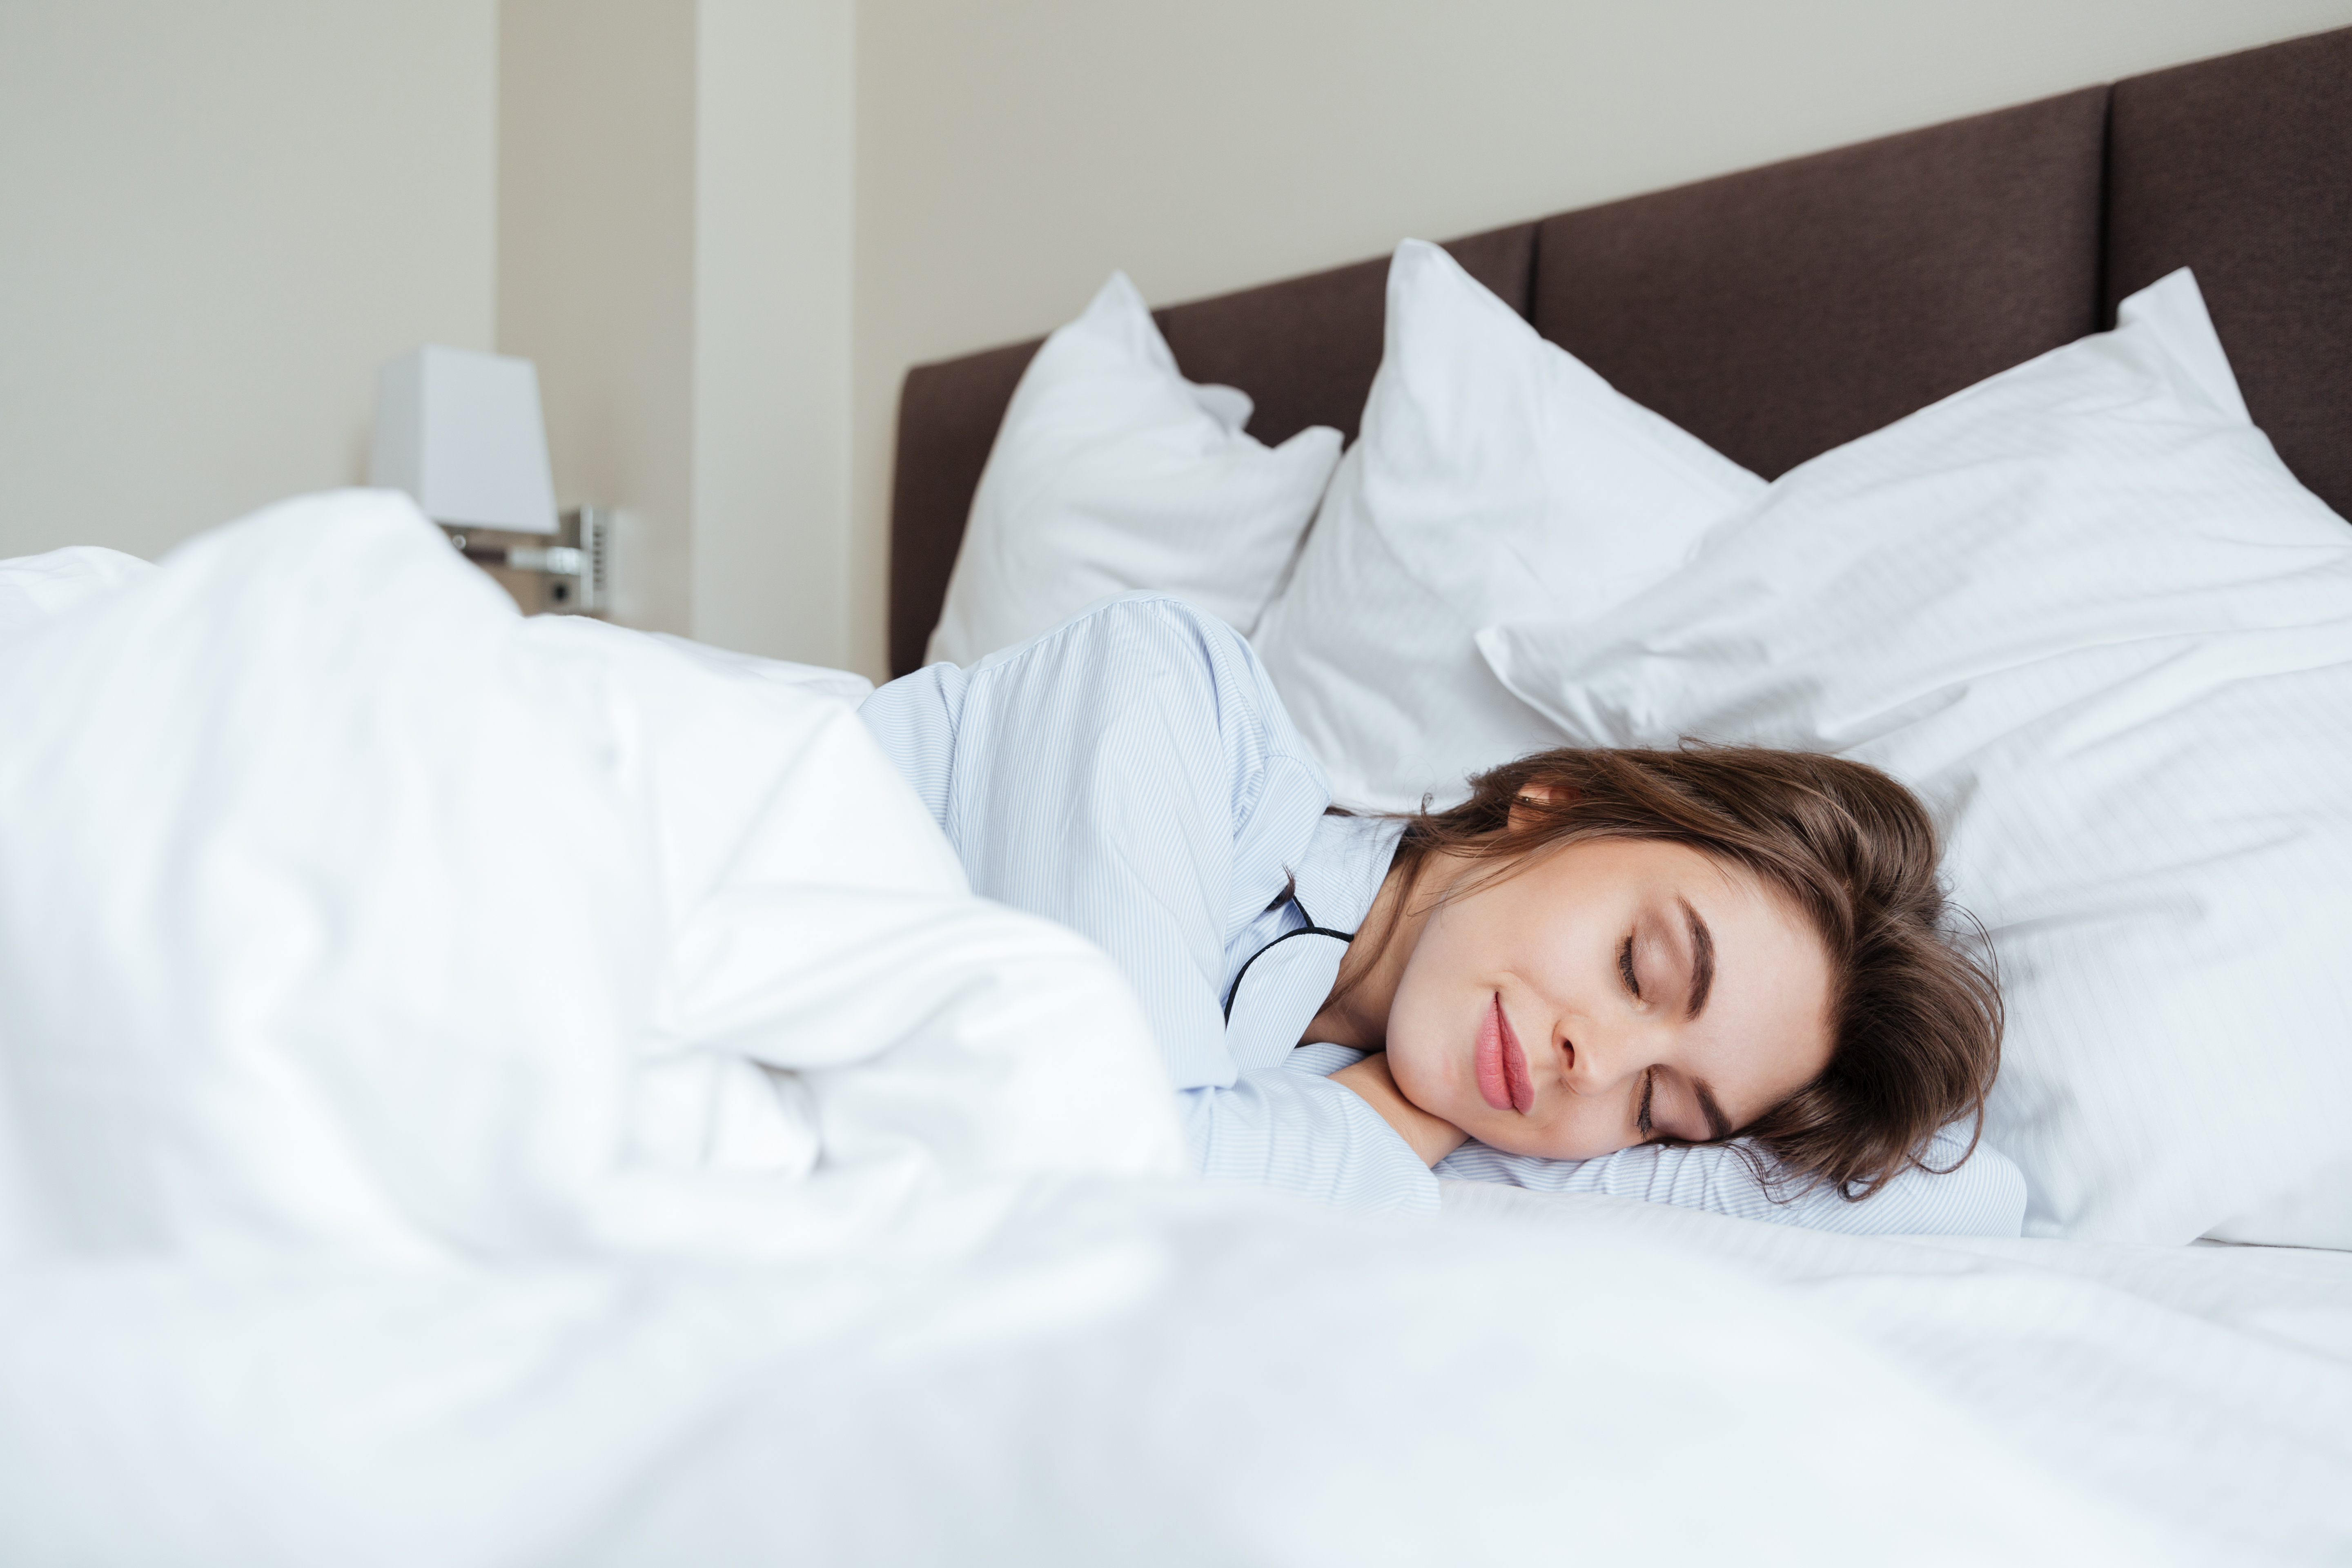 cheerful-young-lady-dressed-pajama-sleeping-bed